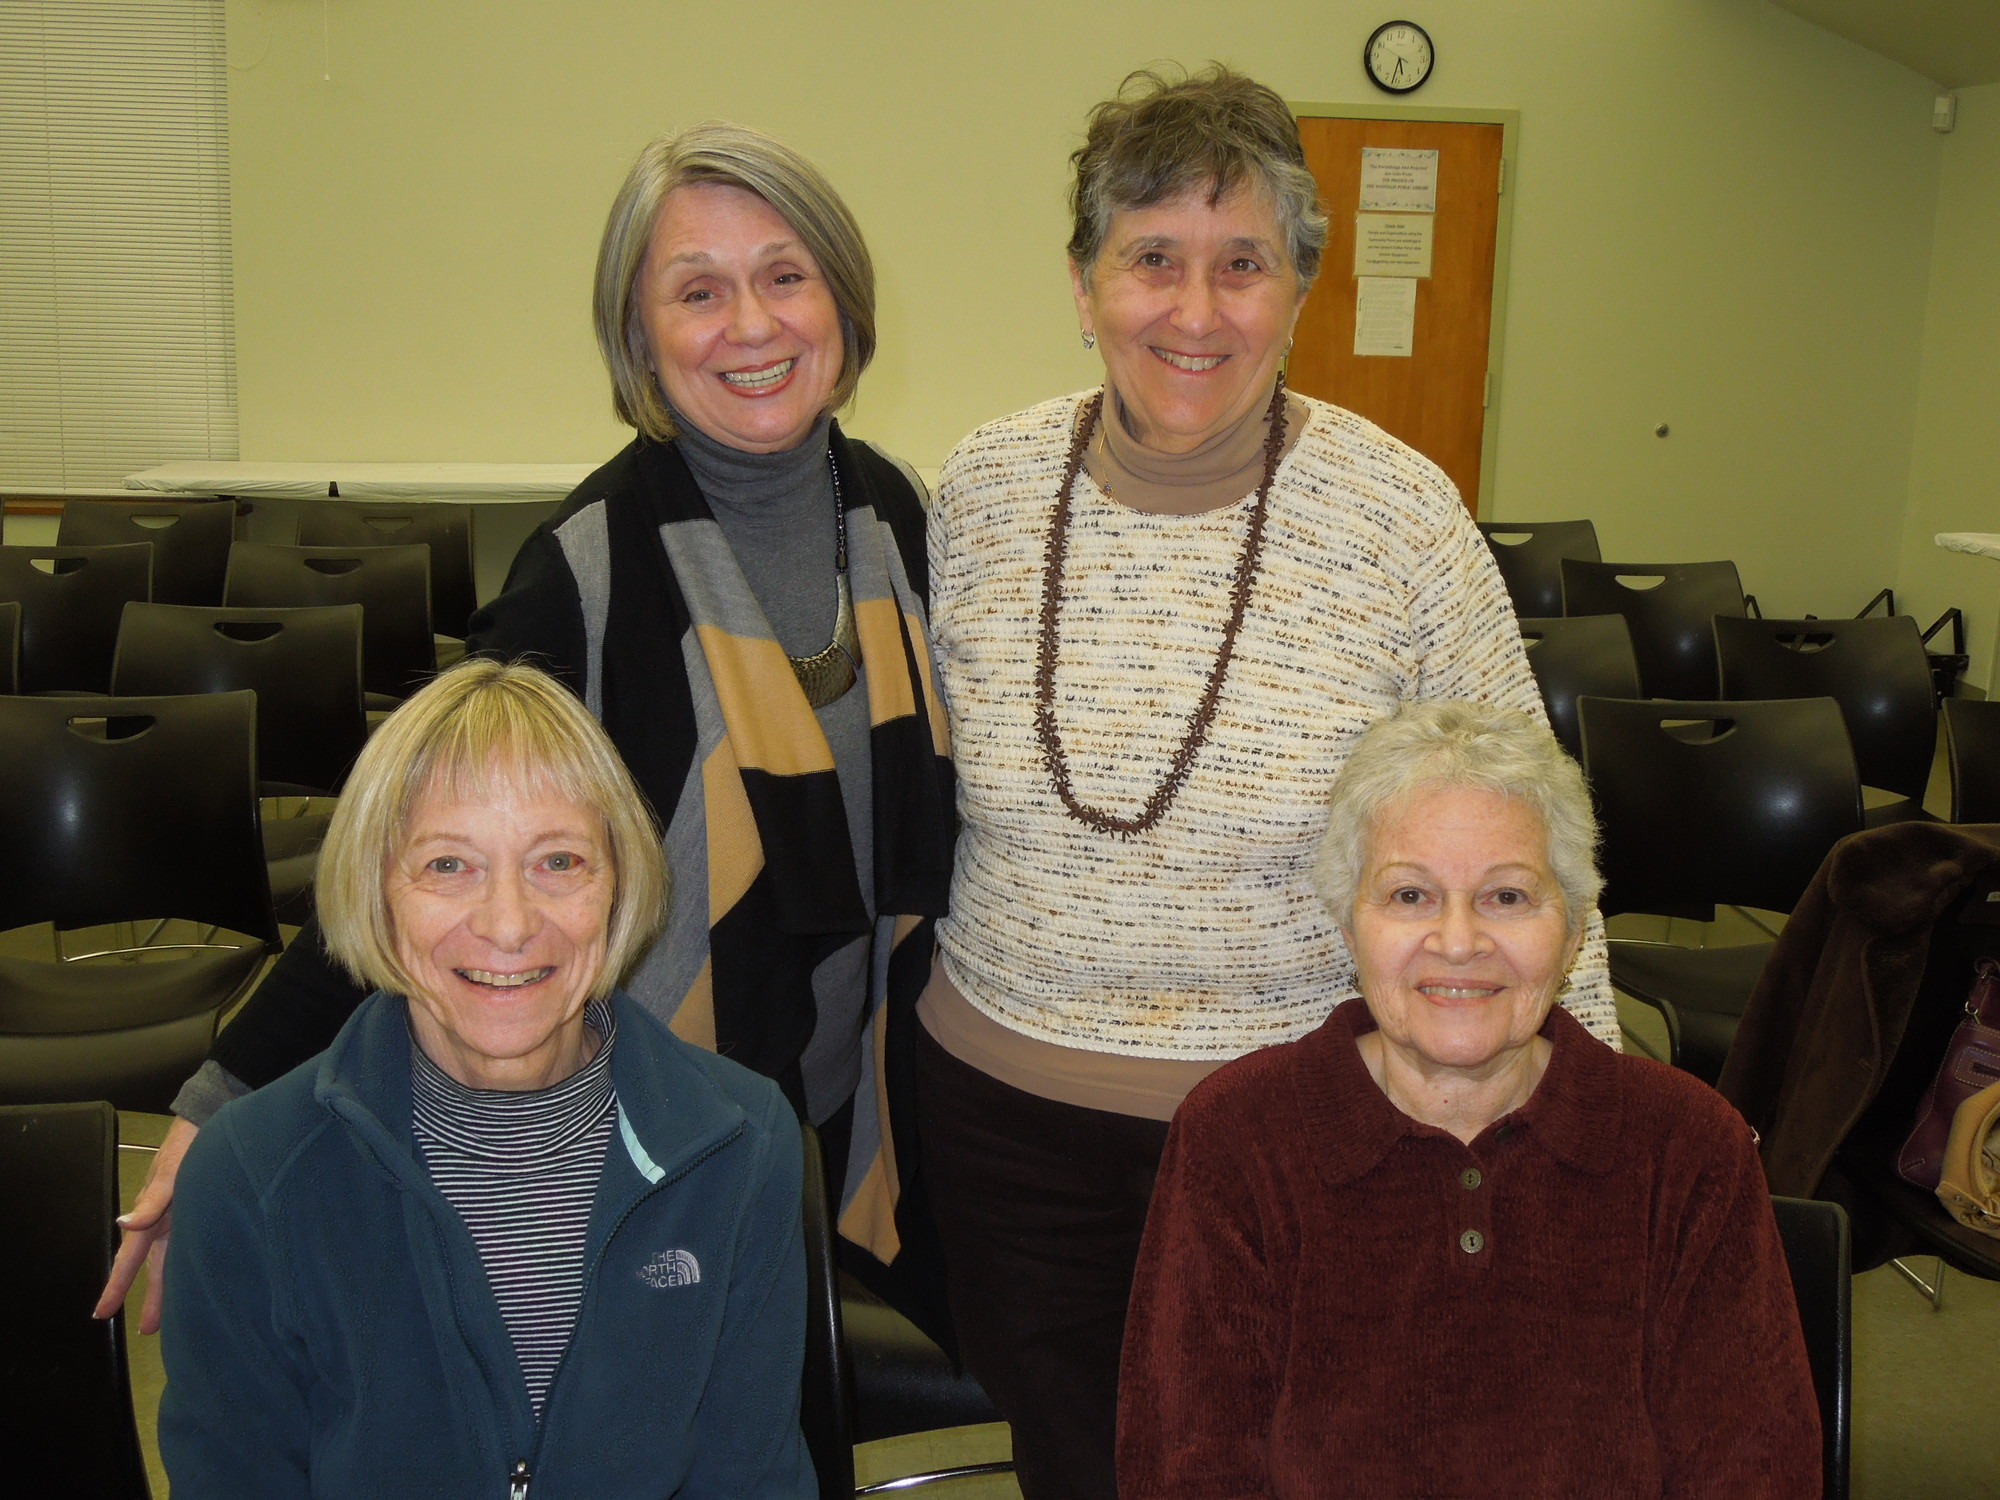 East Nassau League of Women Voters members include, clockwise from top left, Norma Shaeffer, Barbara Epstein, Peggy Stein and Barbara Josepher.